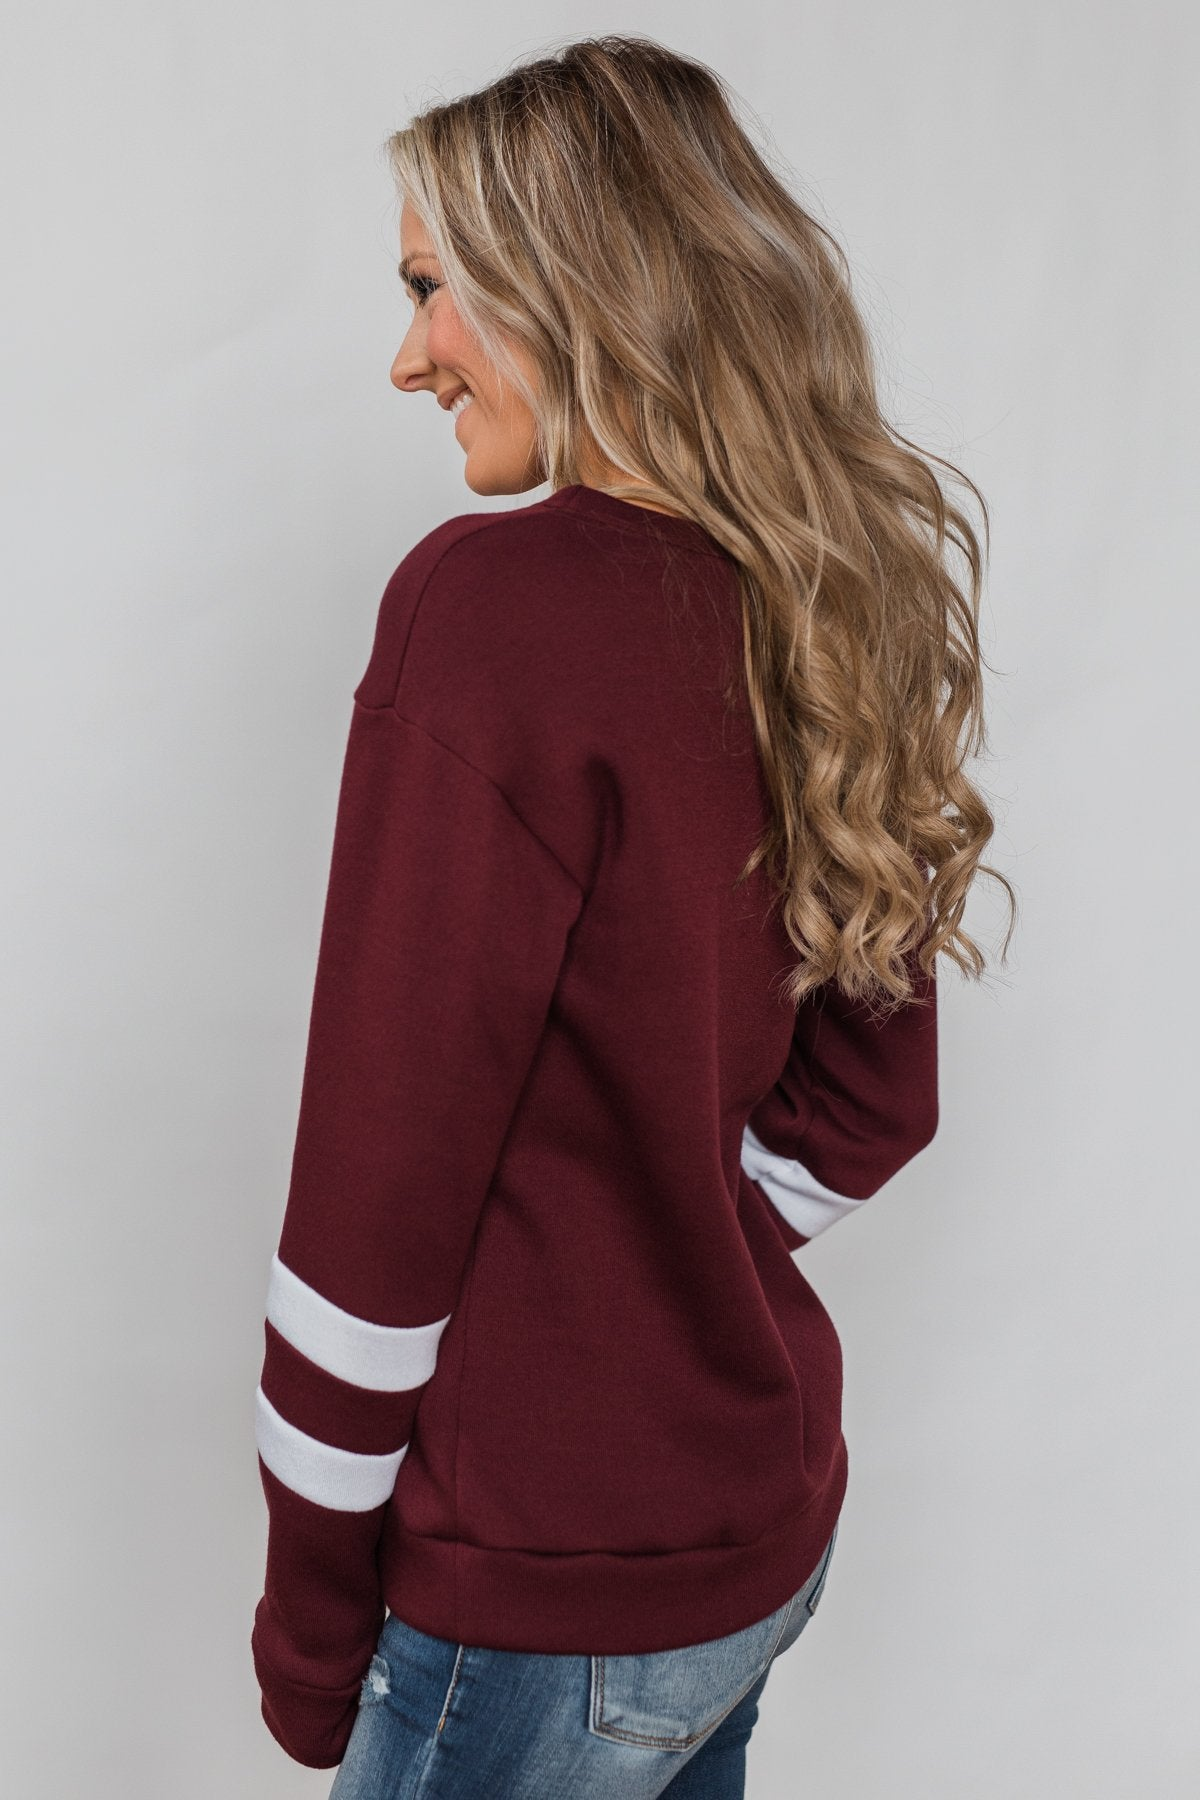 Just As Soft Varsity Stripe Crewneck- Burgundy